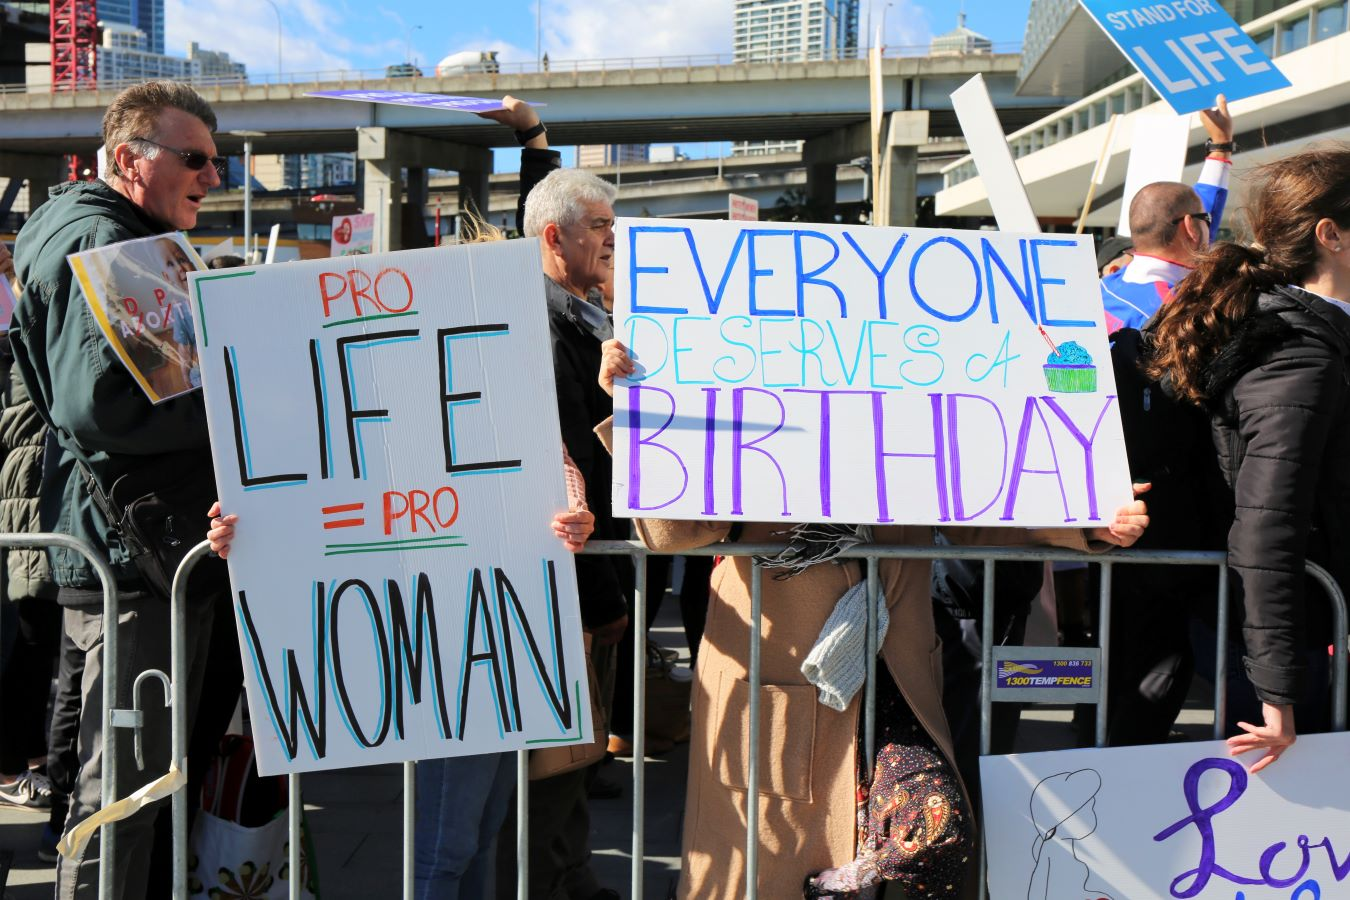 Two women in a crowd holding signs saying 'Pro-Life is Pro-Woman' and 'Everyone Deserves a Birthday'